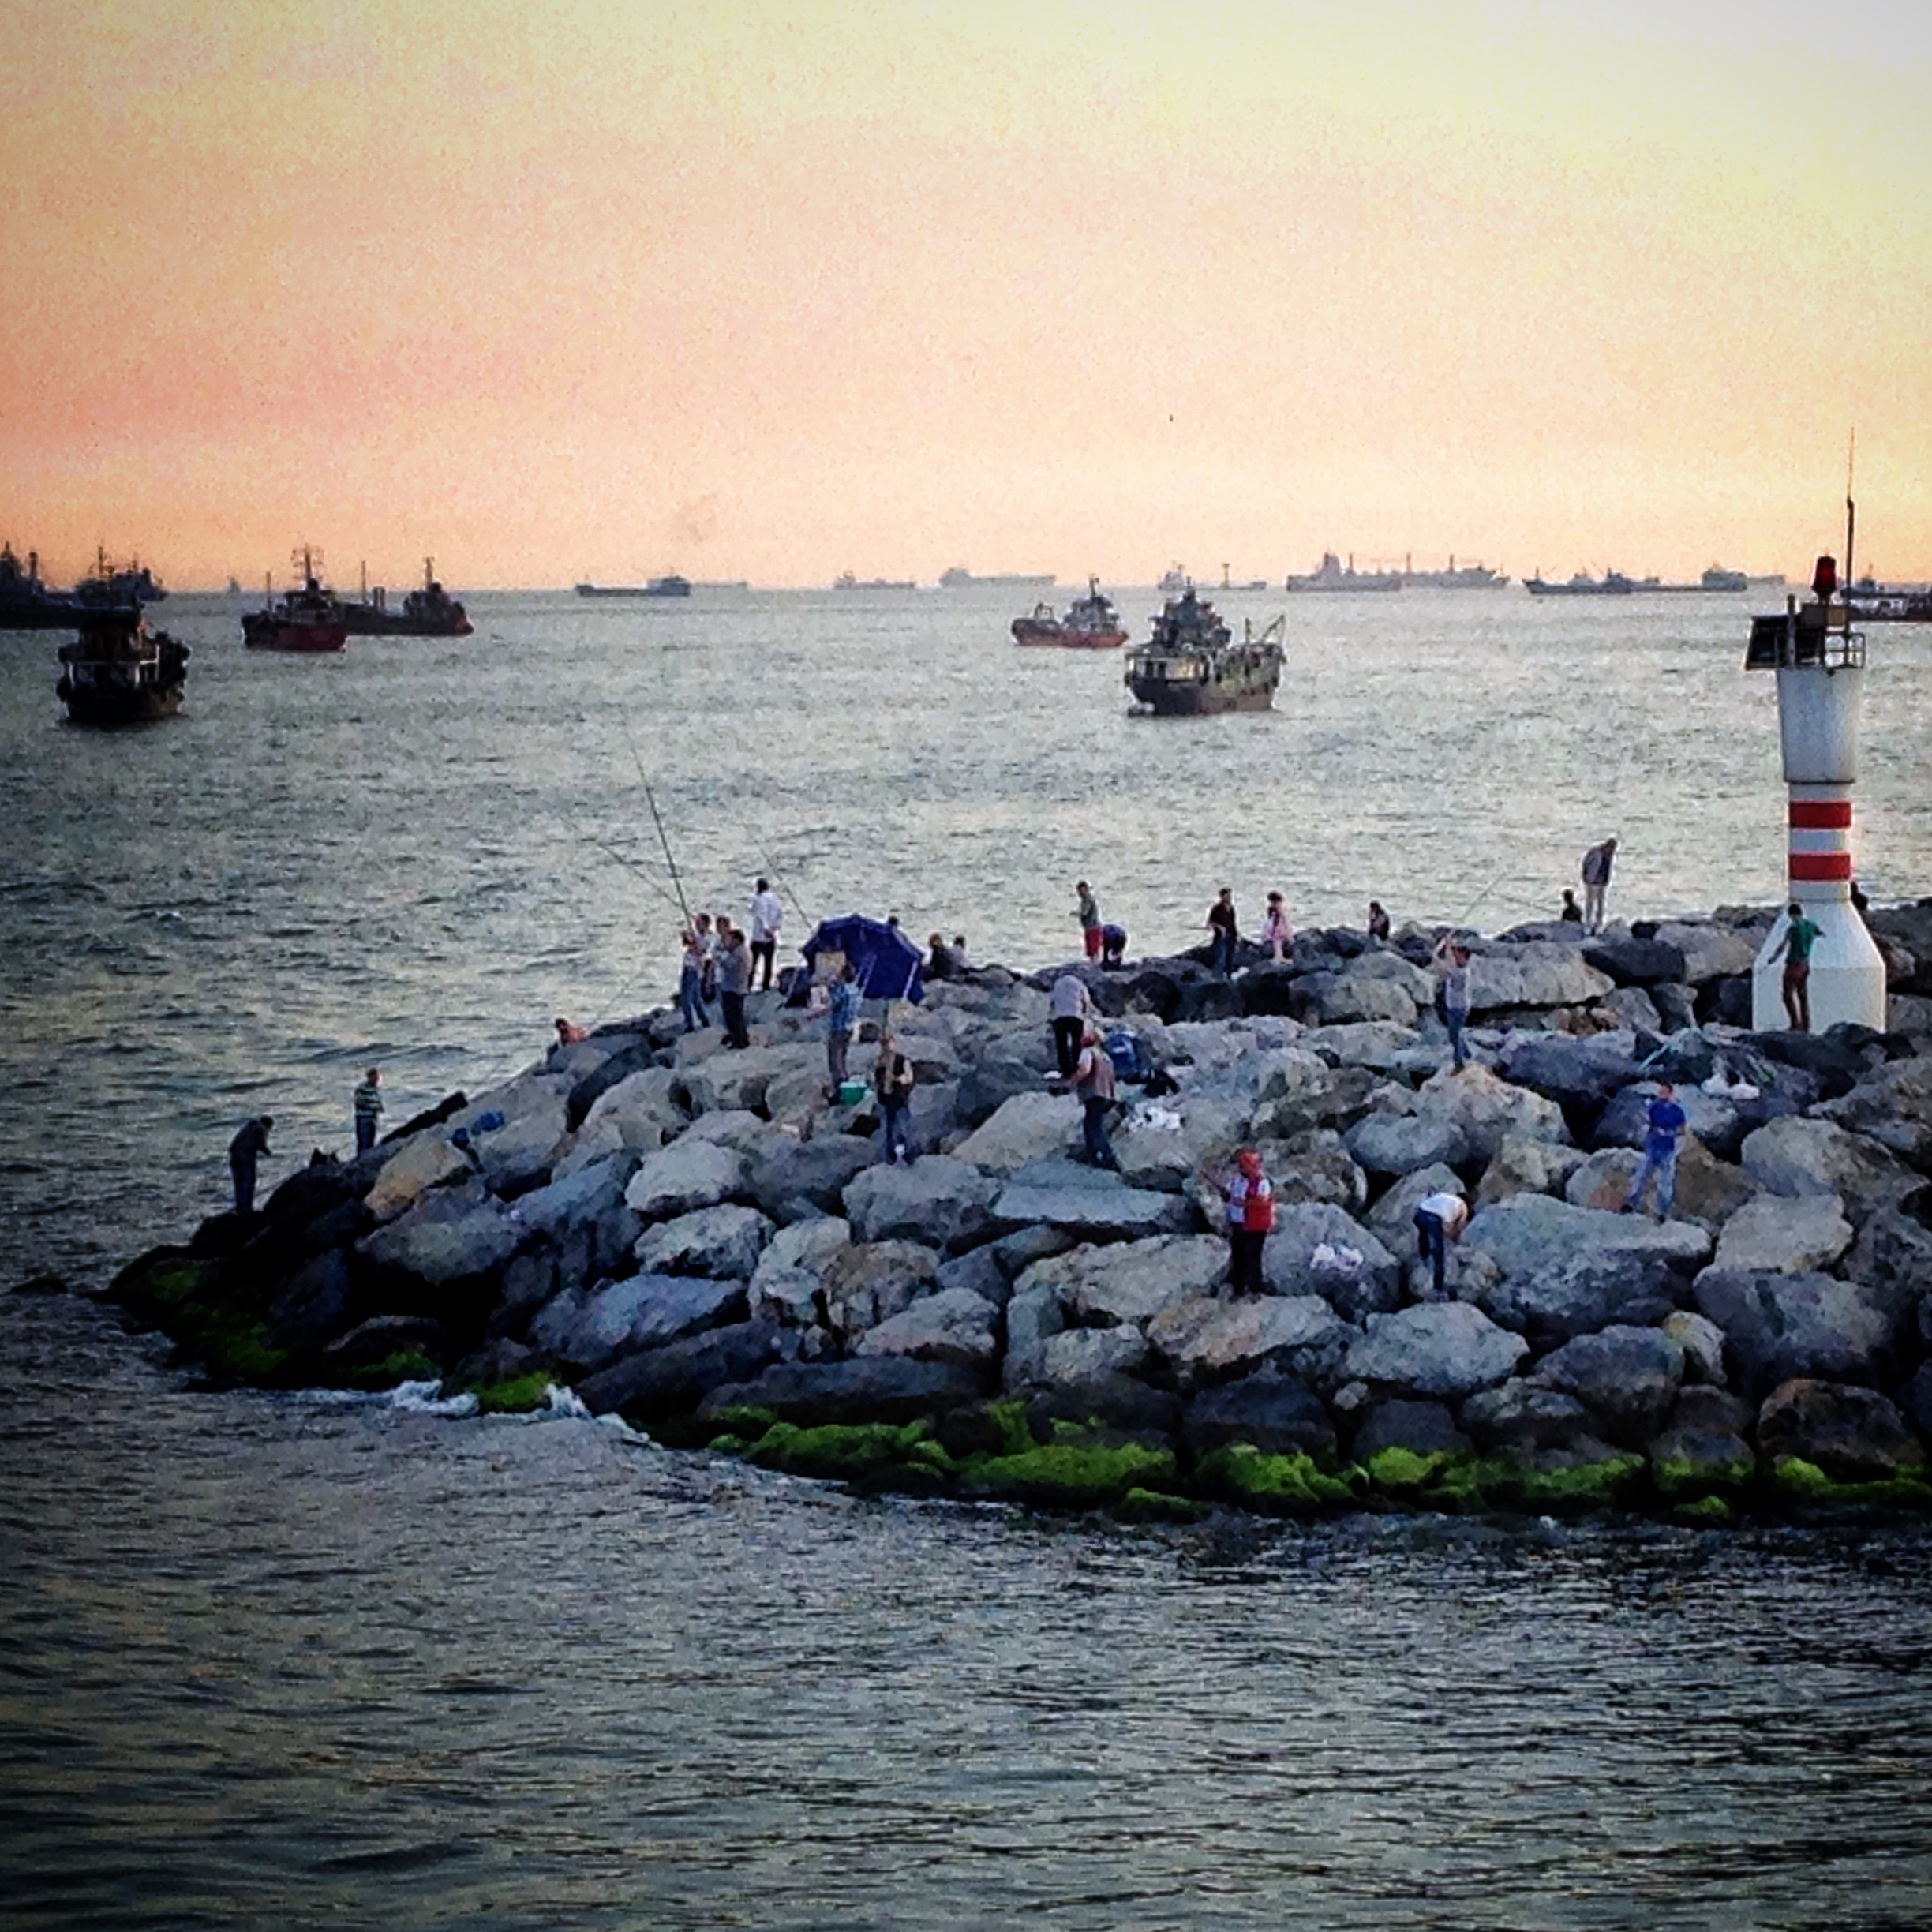 """Istanbullu's fishing off Yenikapi against the backdrop of international commercial liners awaiting permission to traverse the narrow Bosphorus Strait. Locals jokingly refer to the Sea of Marmara as the """"parking lot."""""""